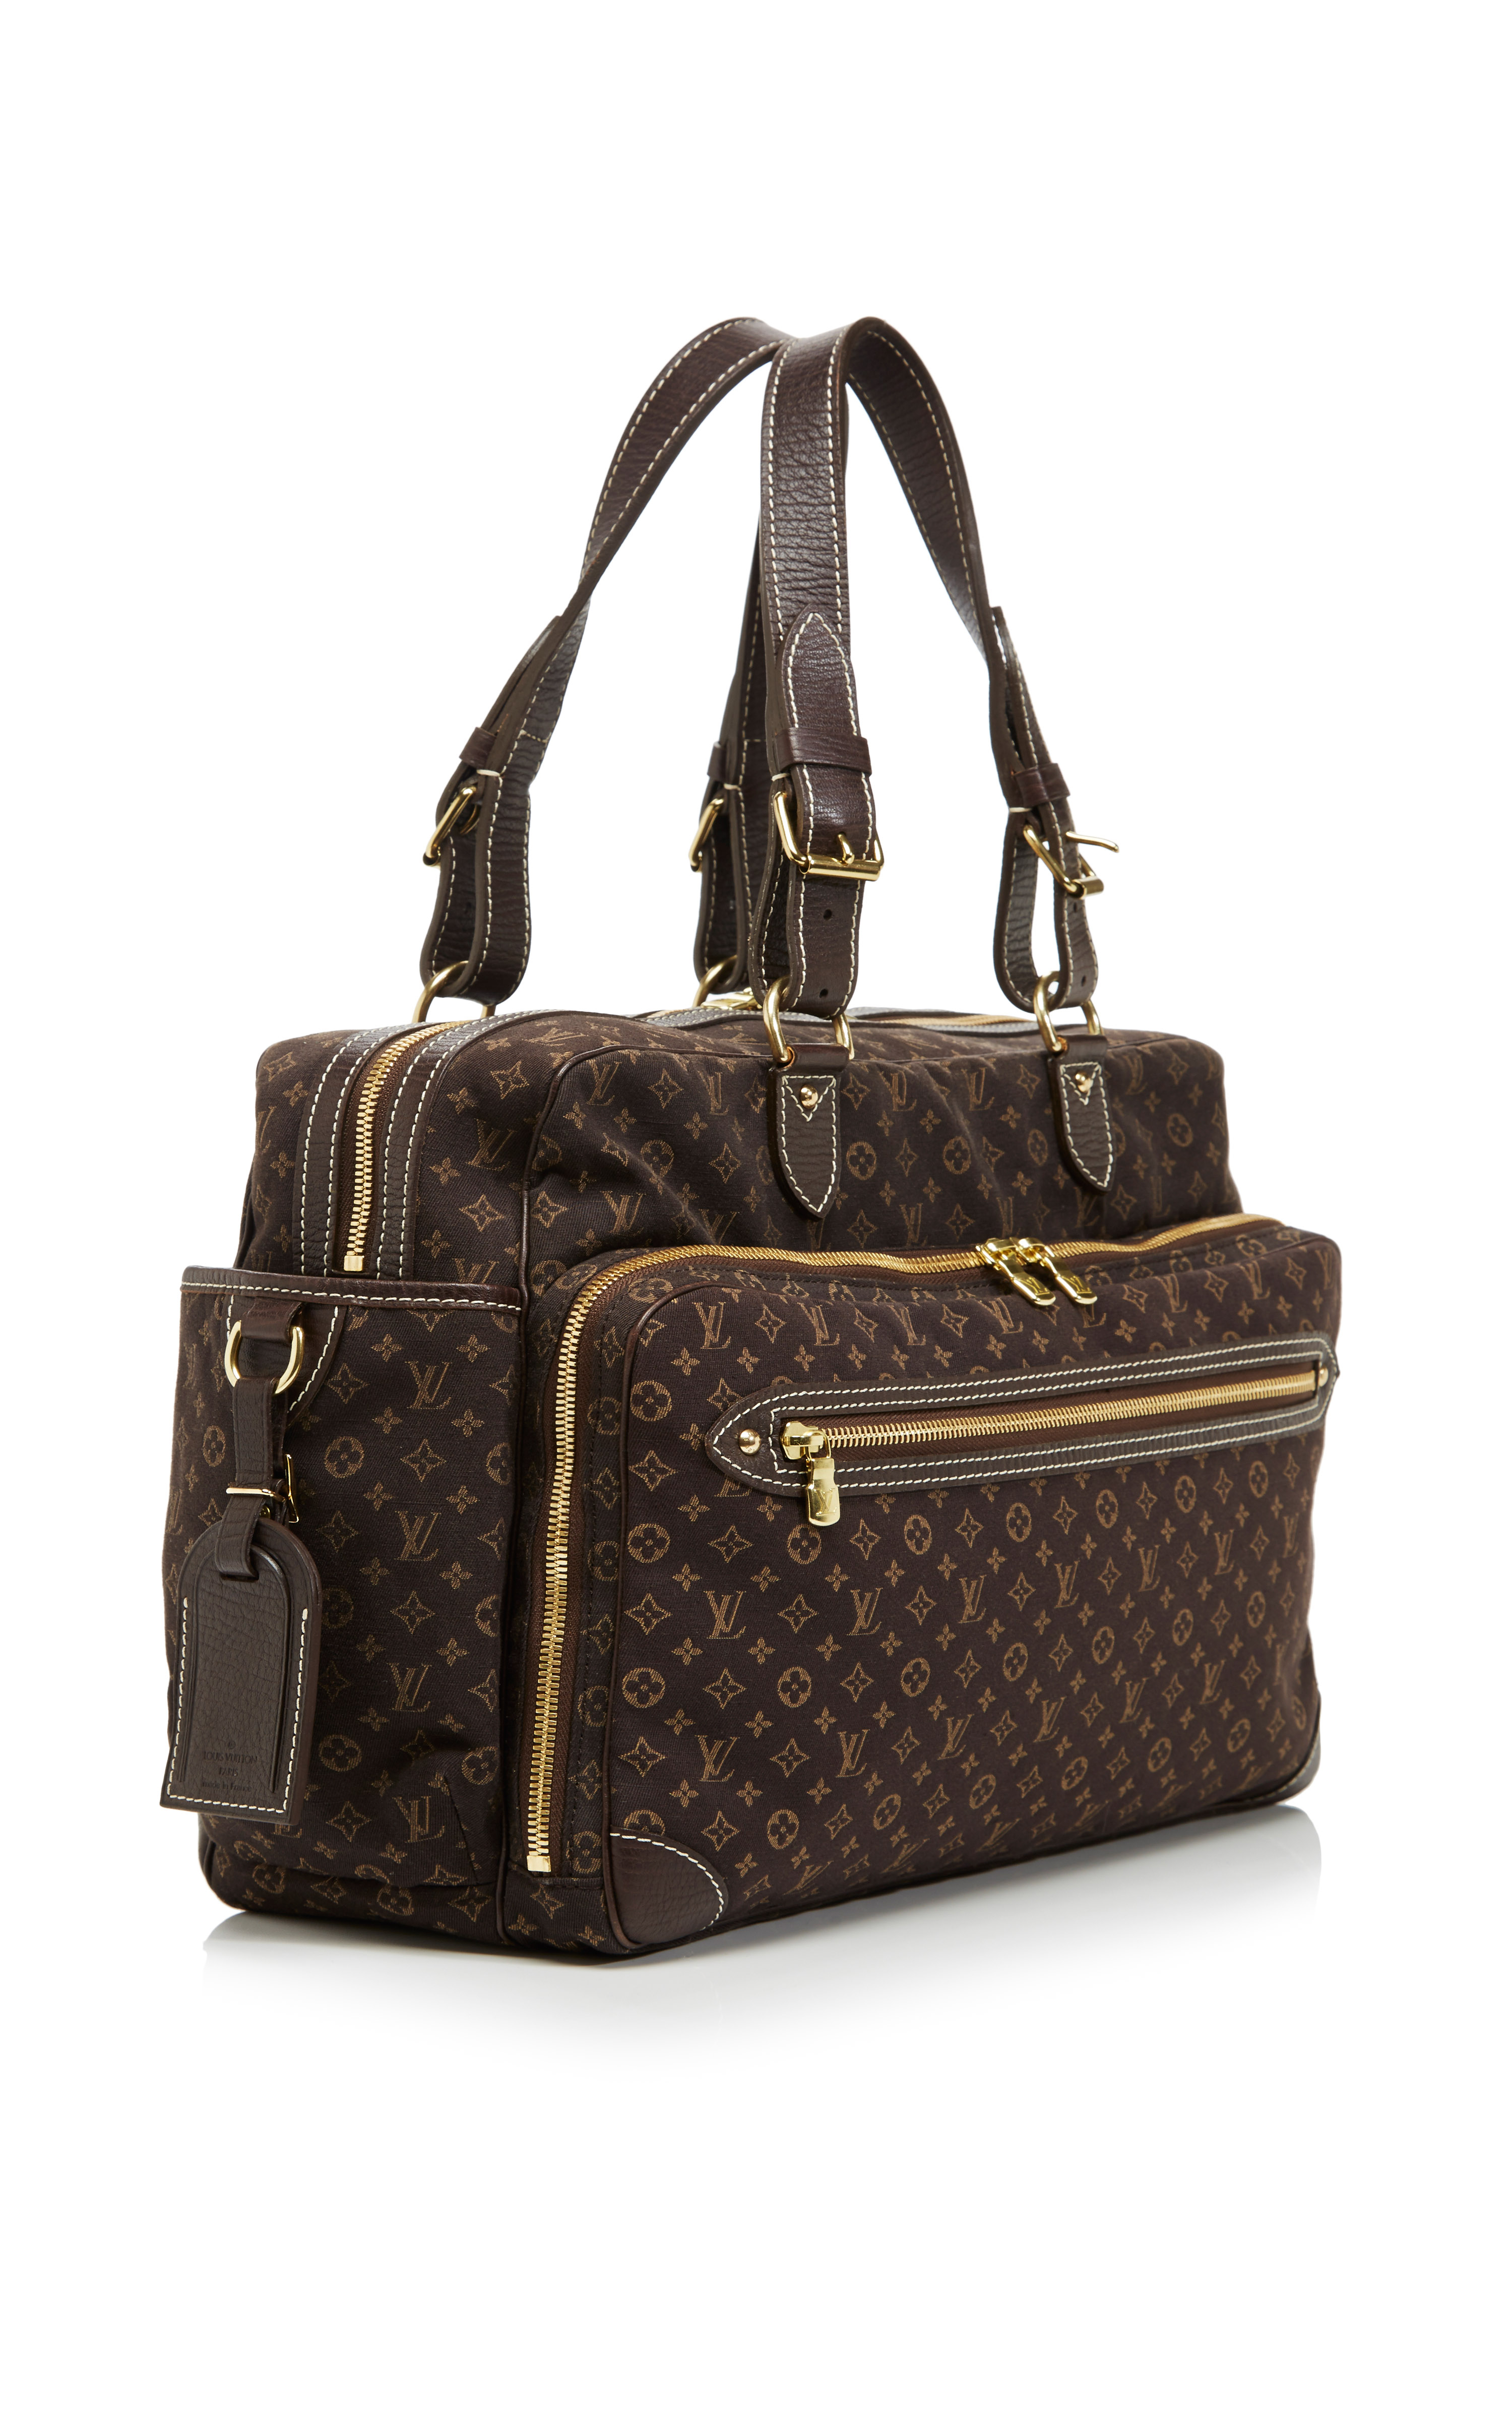 lyst louis vuitton monogram mini lin sac a langer in brown. Black Bedroom Furniture Sets. Home Design Ideas